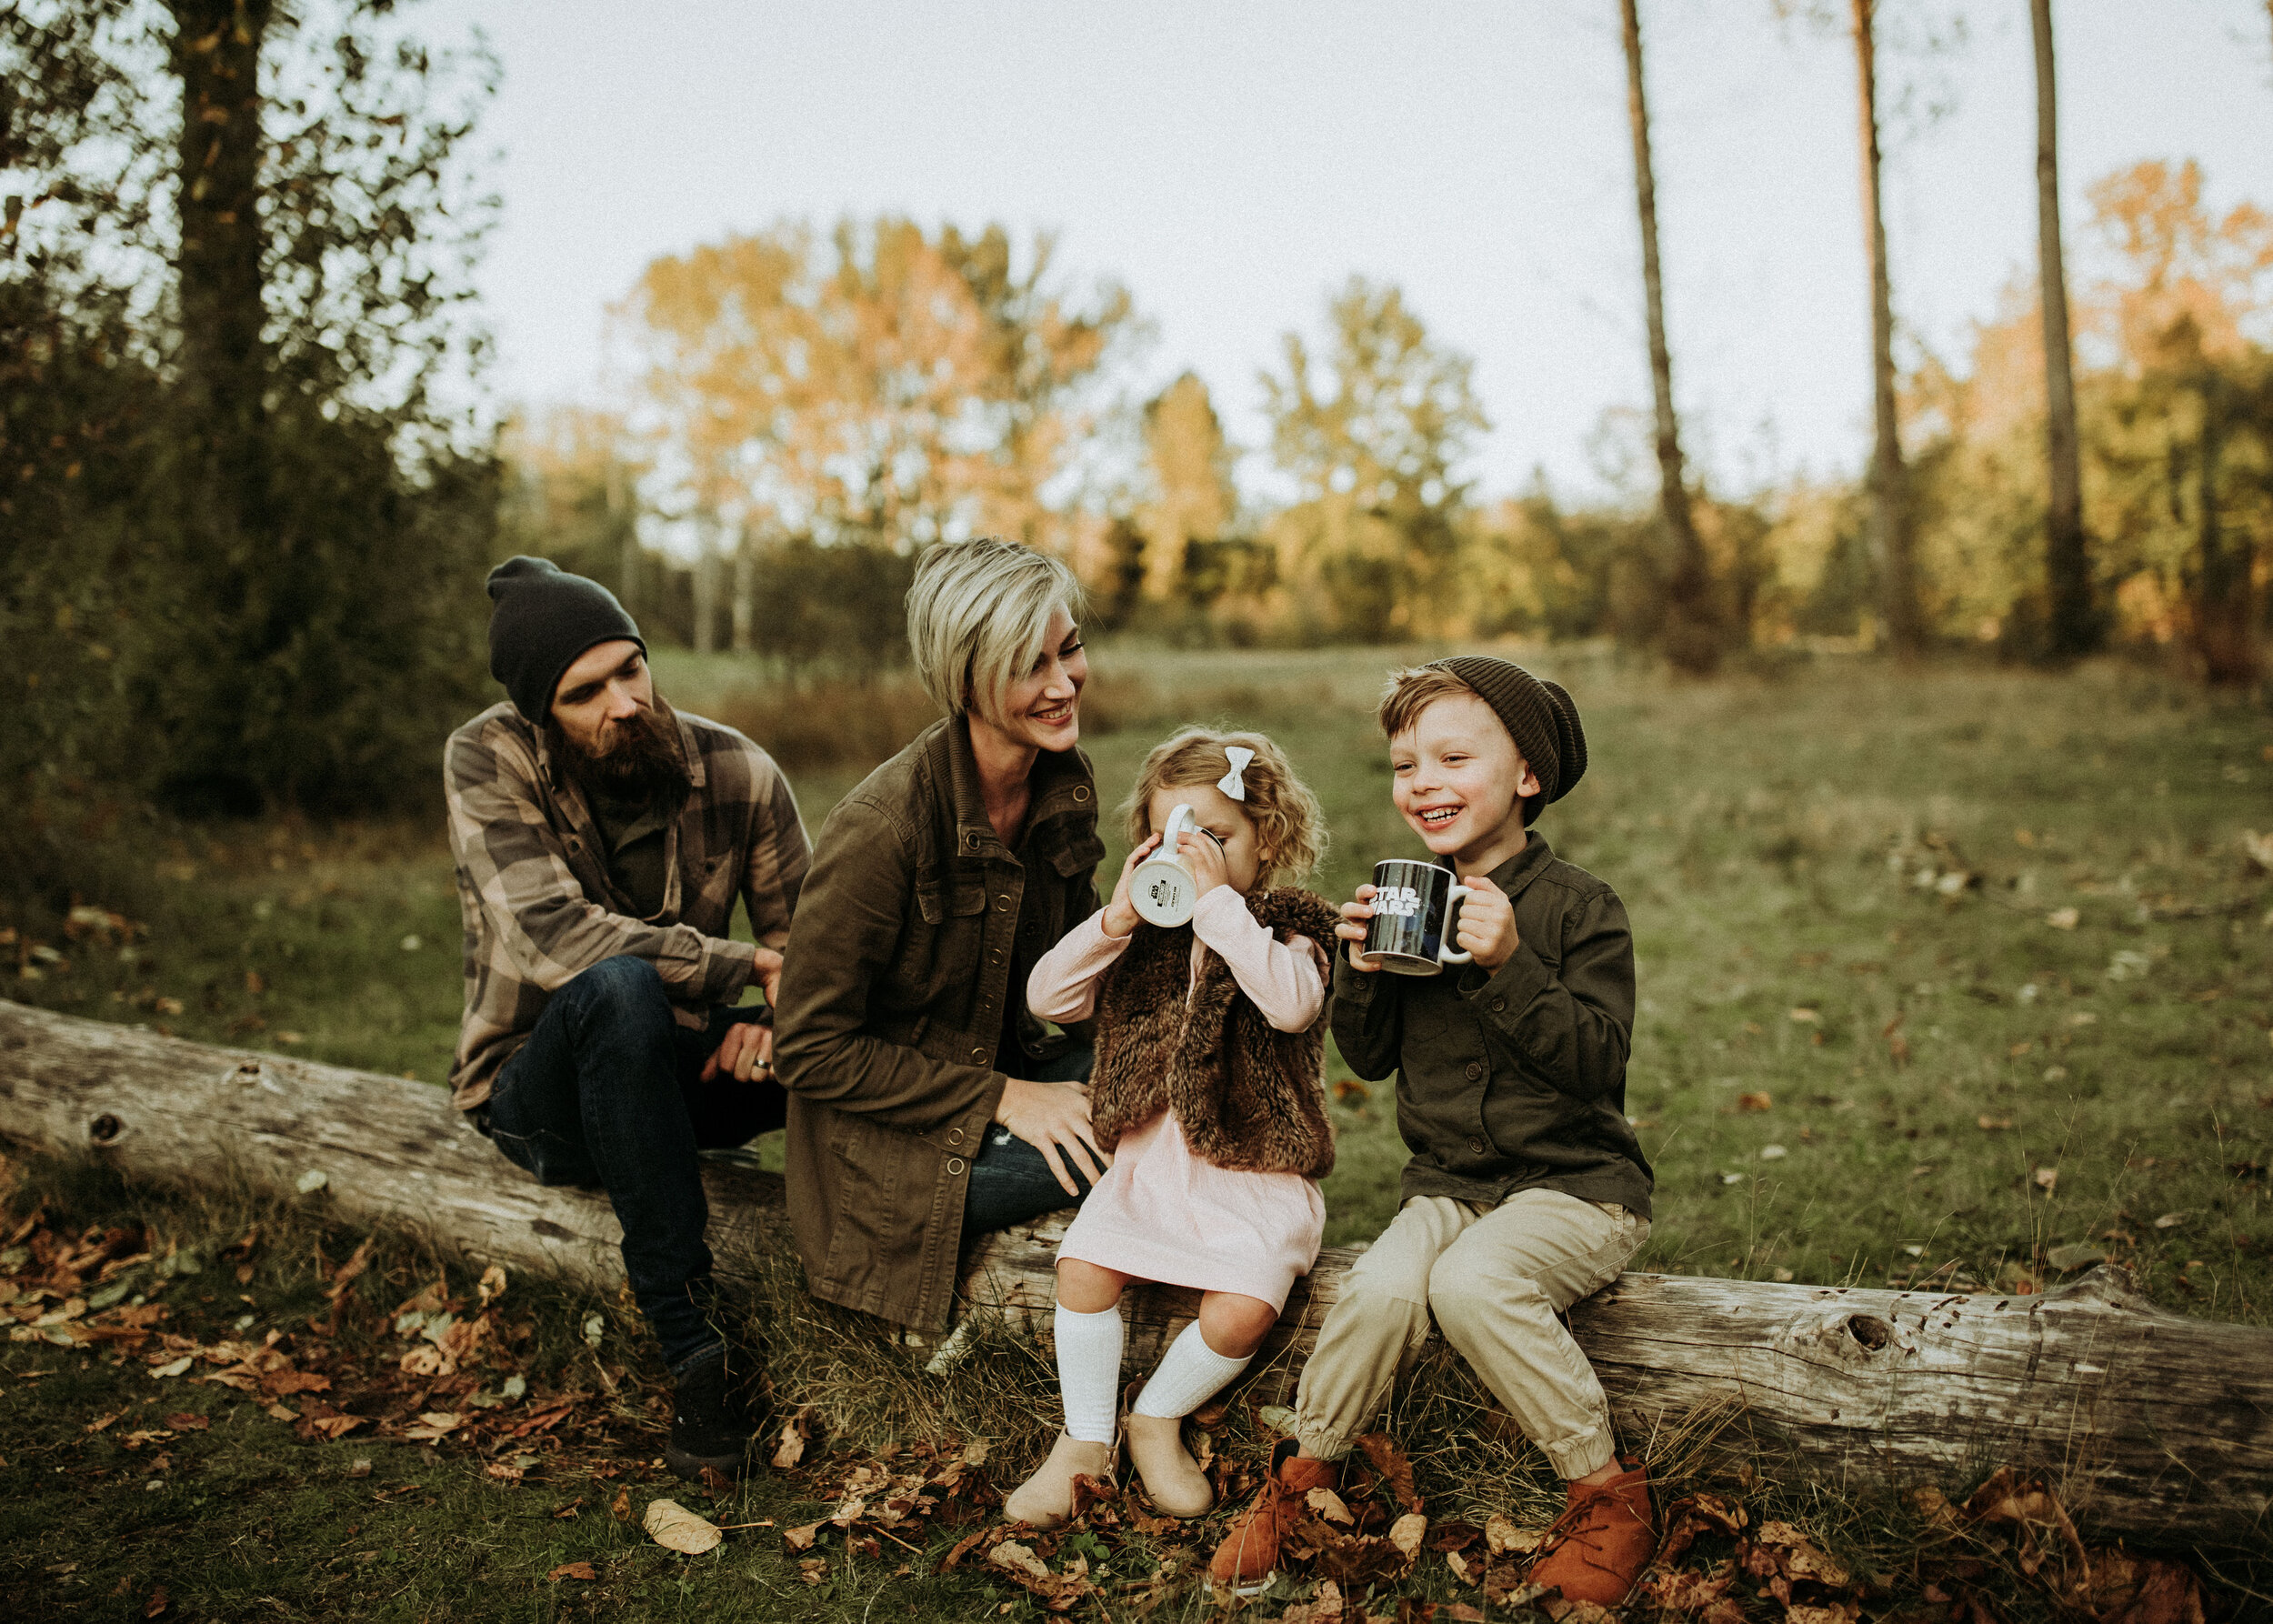 Bringing hot chocolate for this fall session was a great idea! It looks cute for photos and the kids love it.